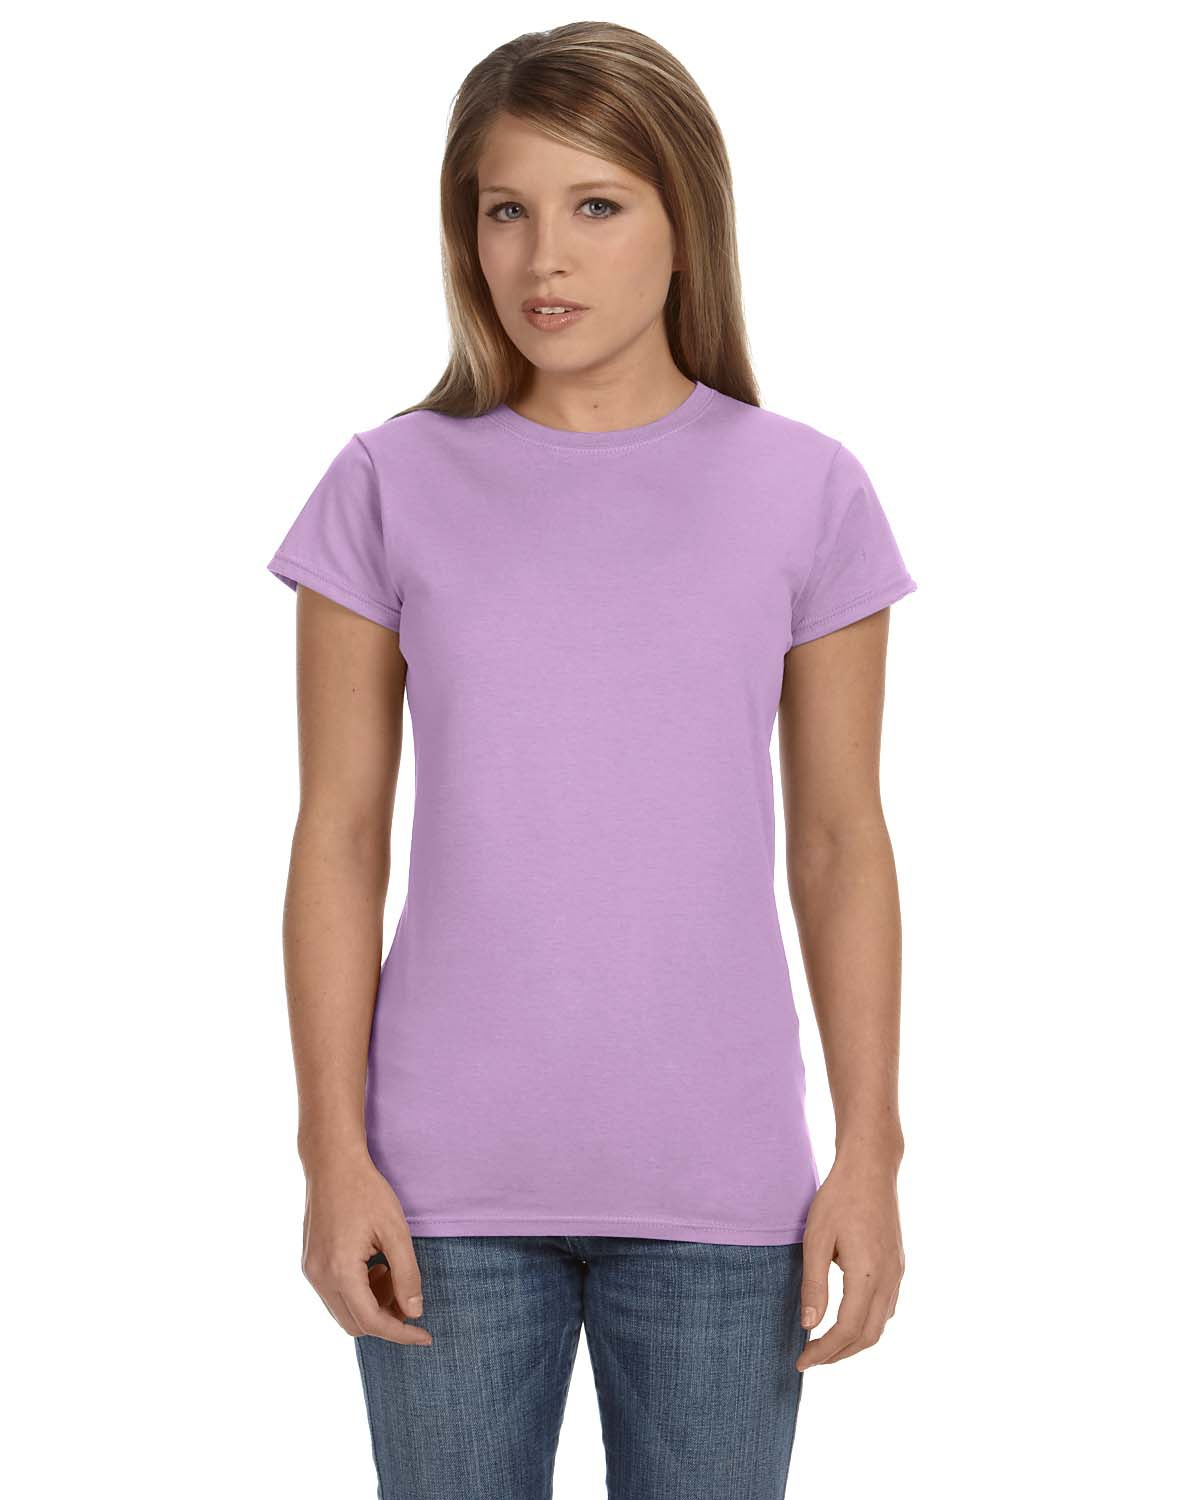 Softstyle Fitted T-Shirt #G640L